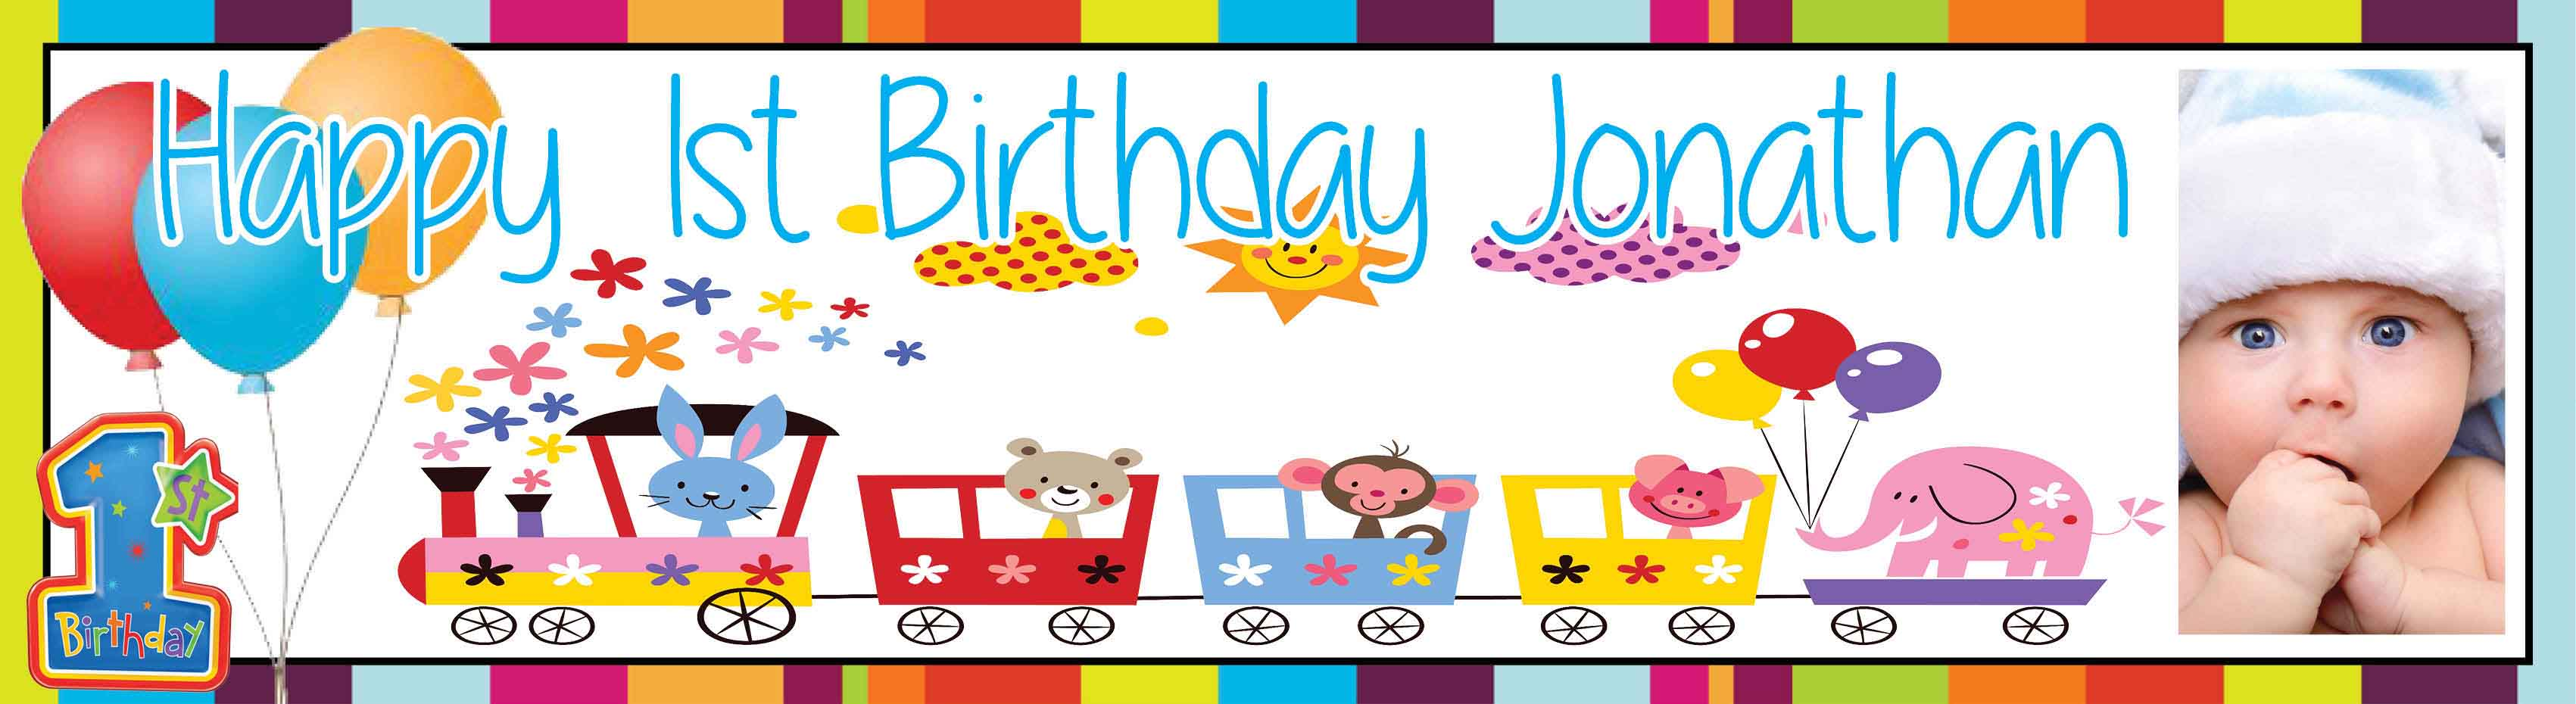 1st Birthday Party Banner 10